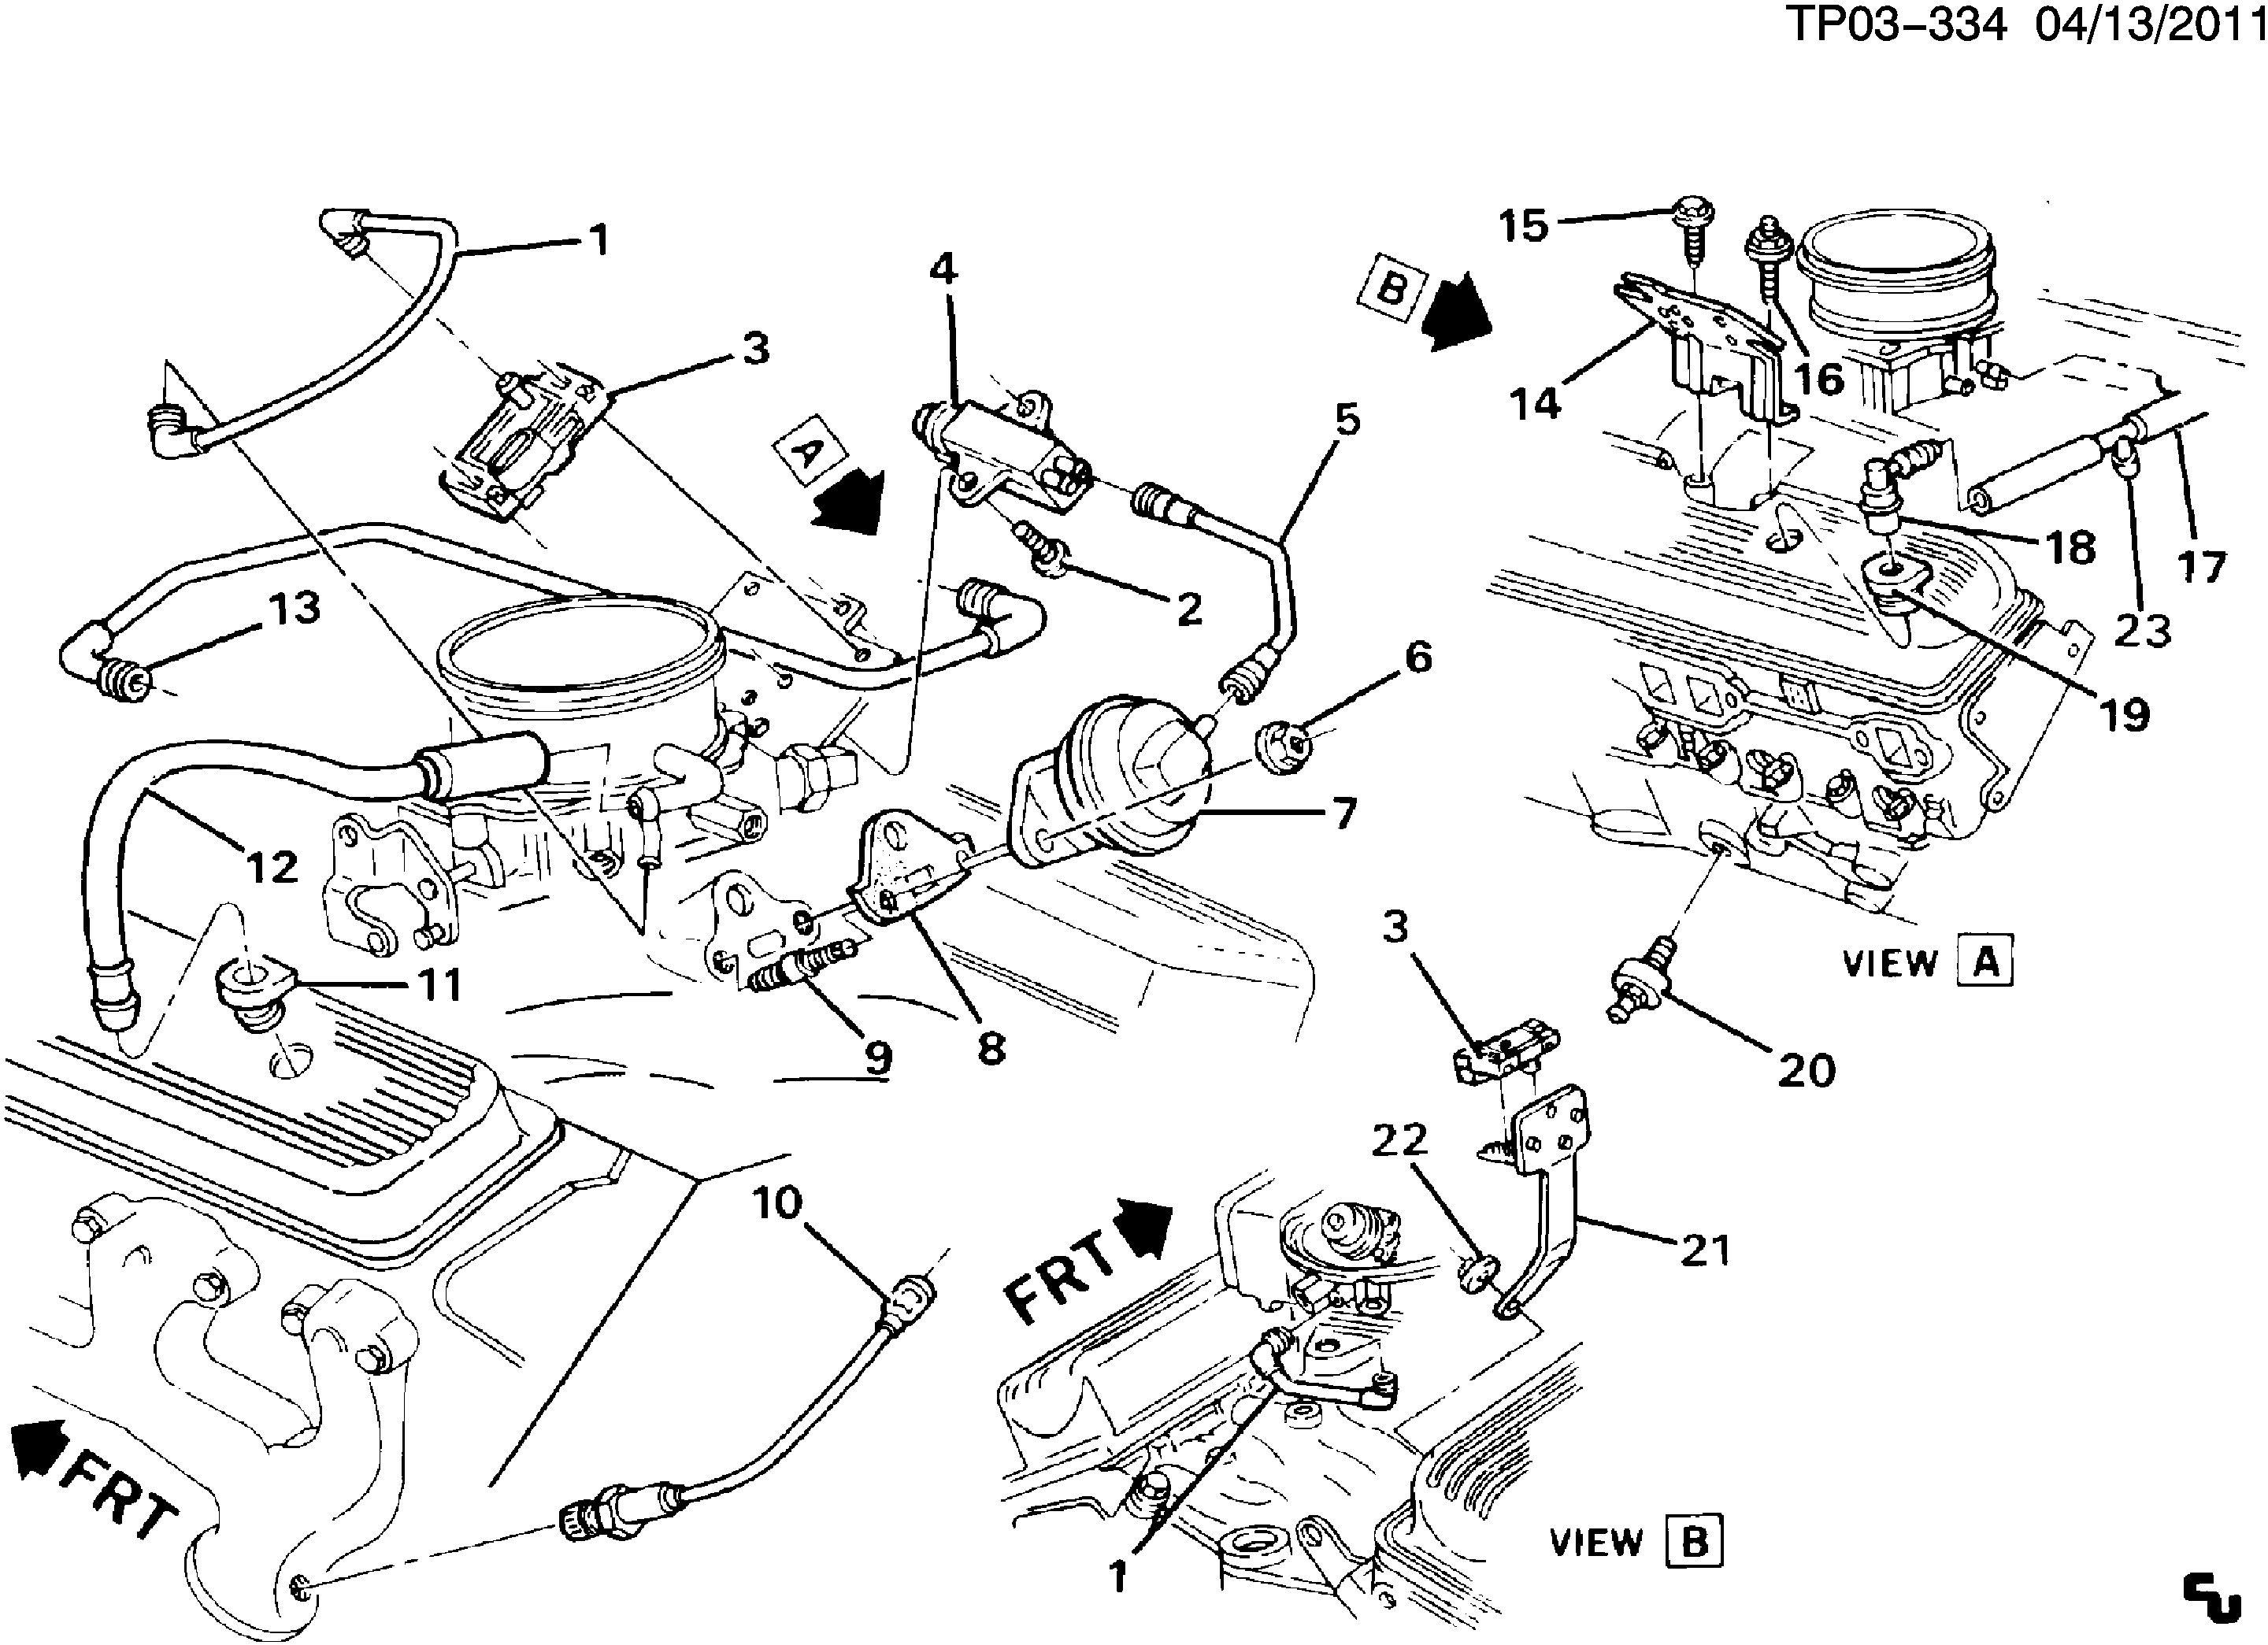 Wiring Diagram For Chevrolet 350 Engine